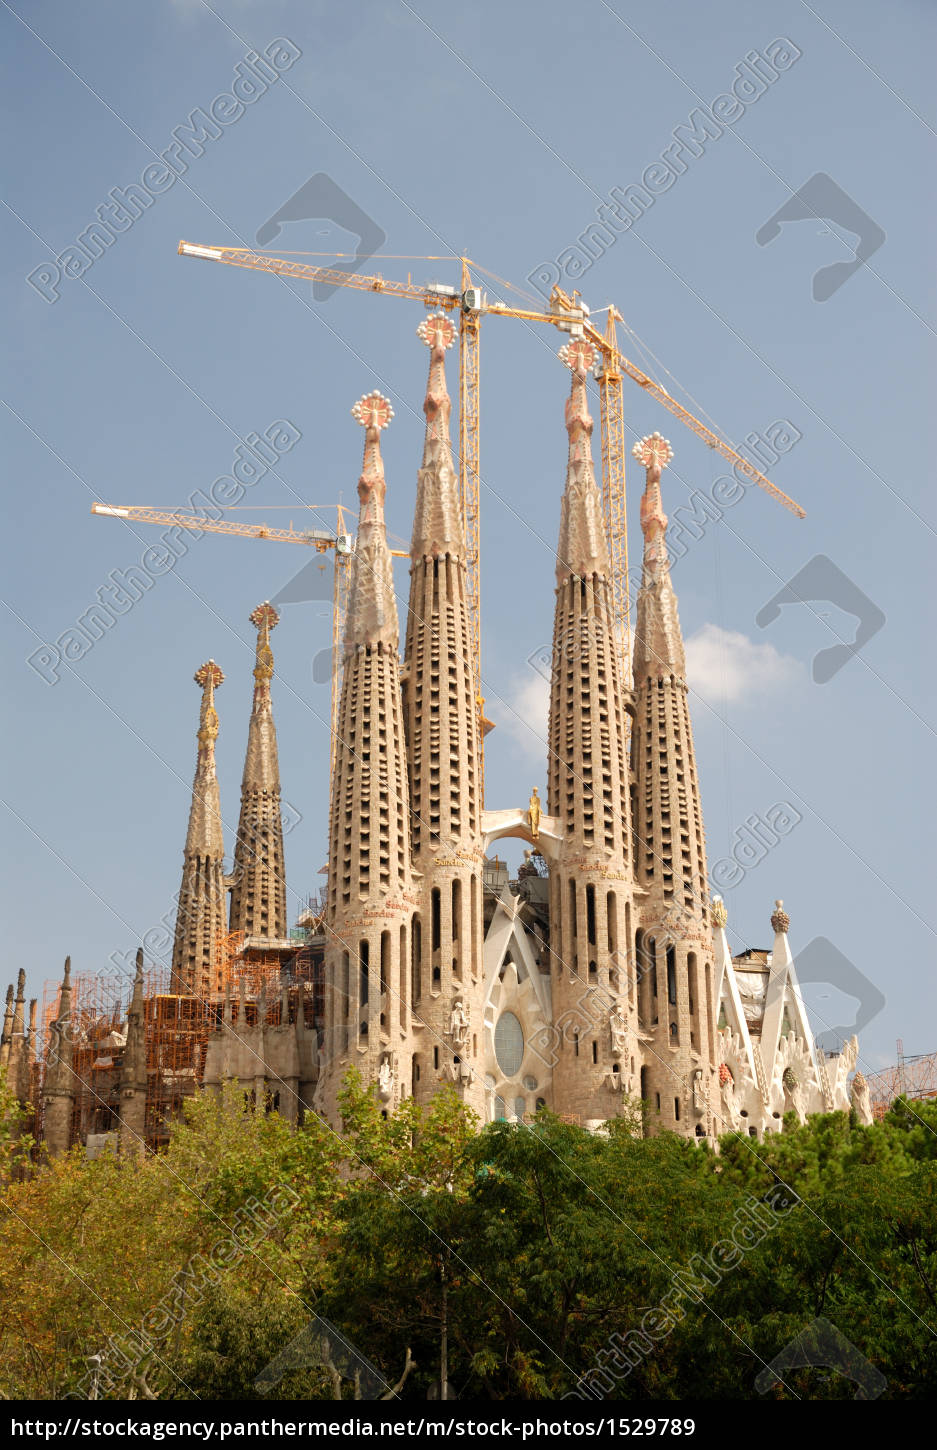 sagrada, familia, in, barcelona - 1529789